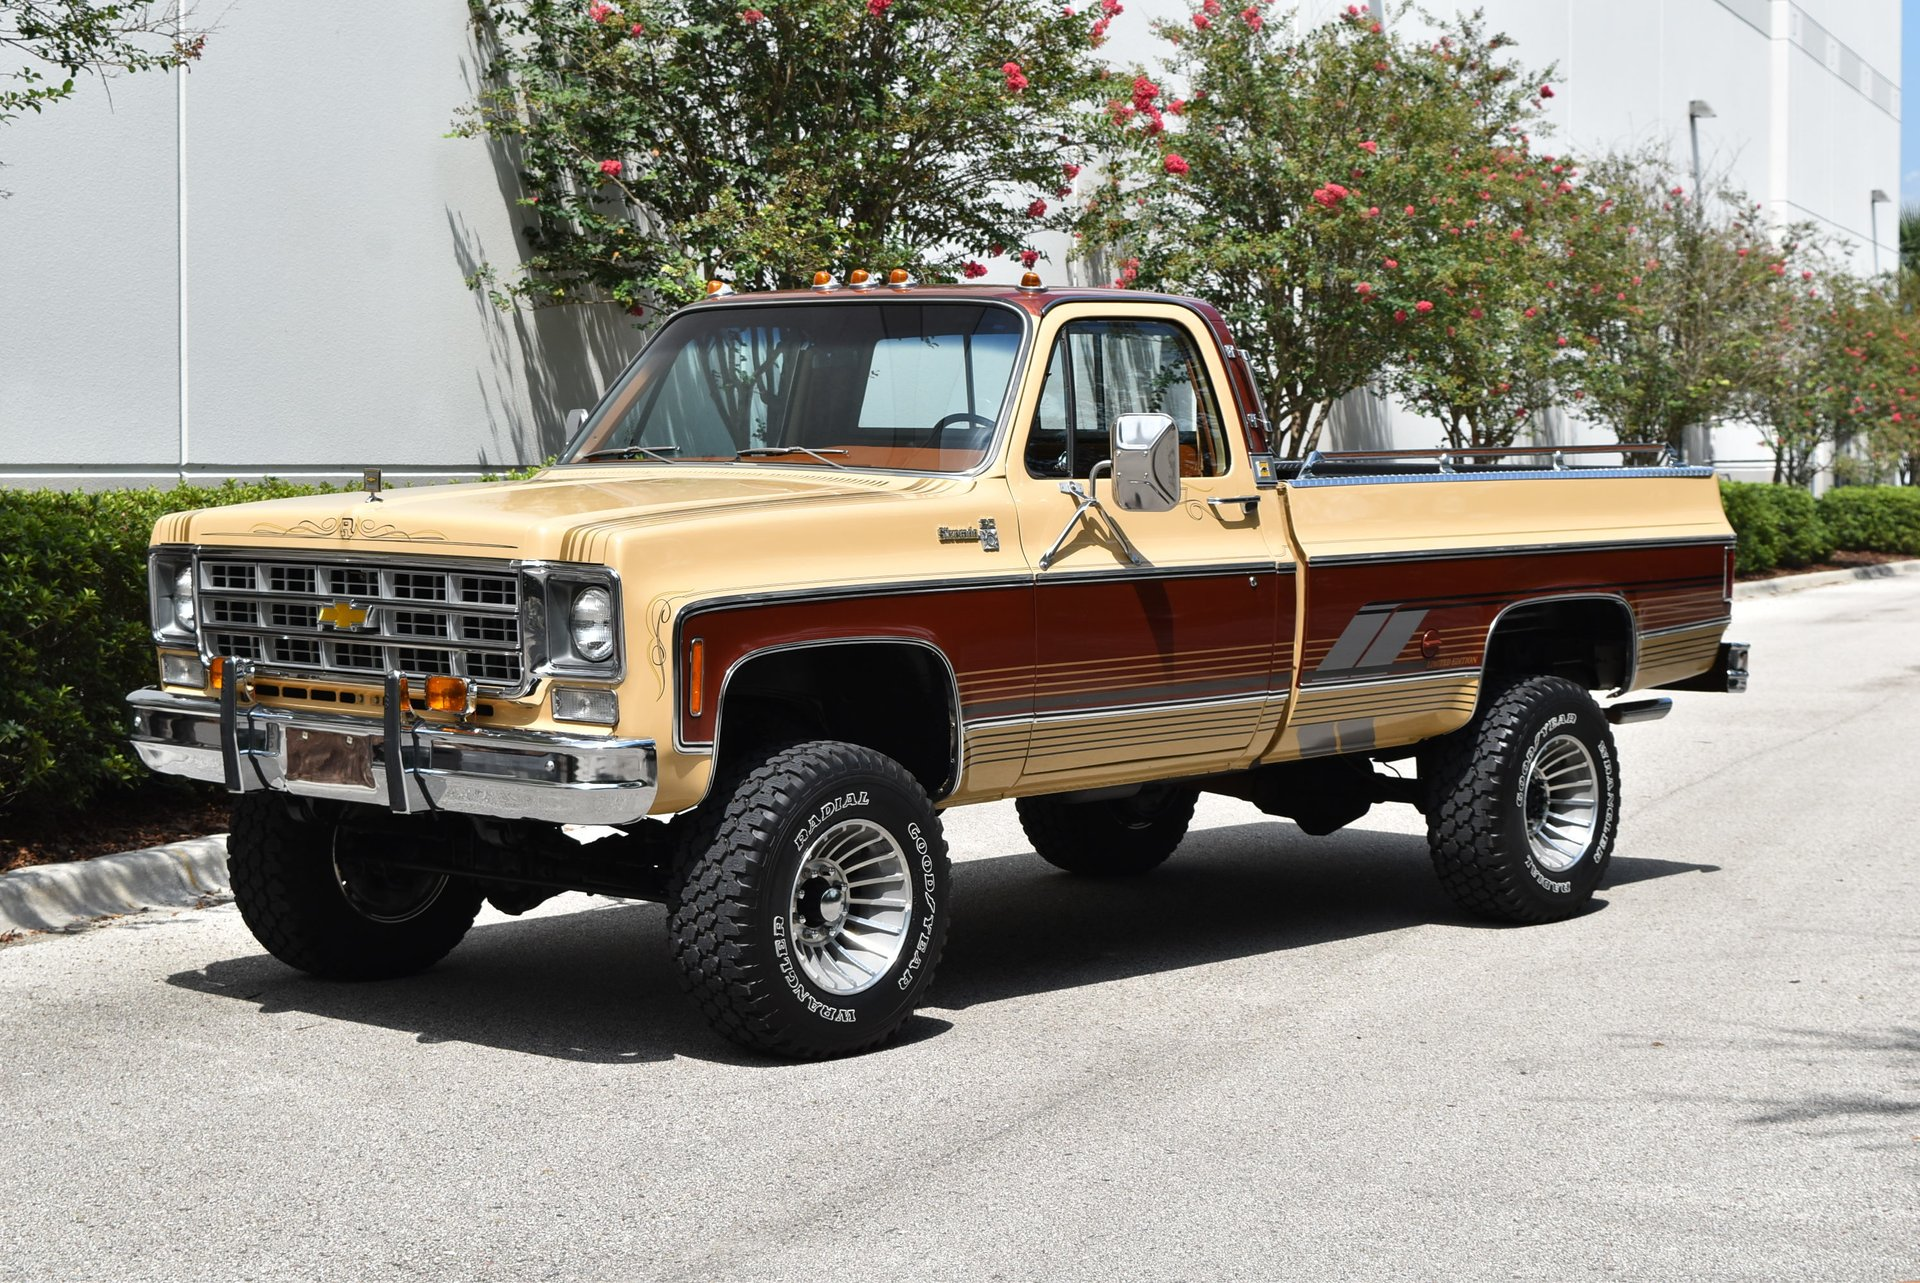 1978 chevrolet silverado chevy k20 truck pickup classic gmc trucks lifted hemmings orlando